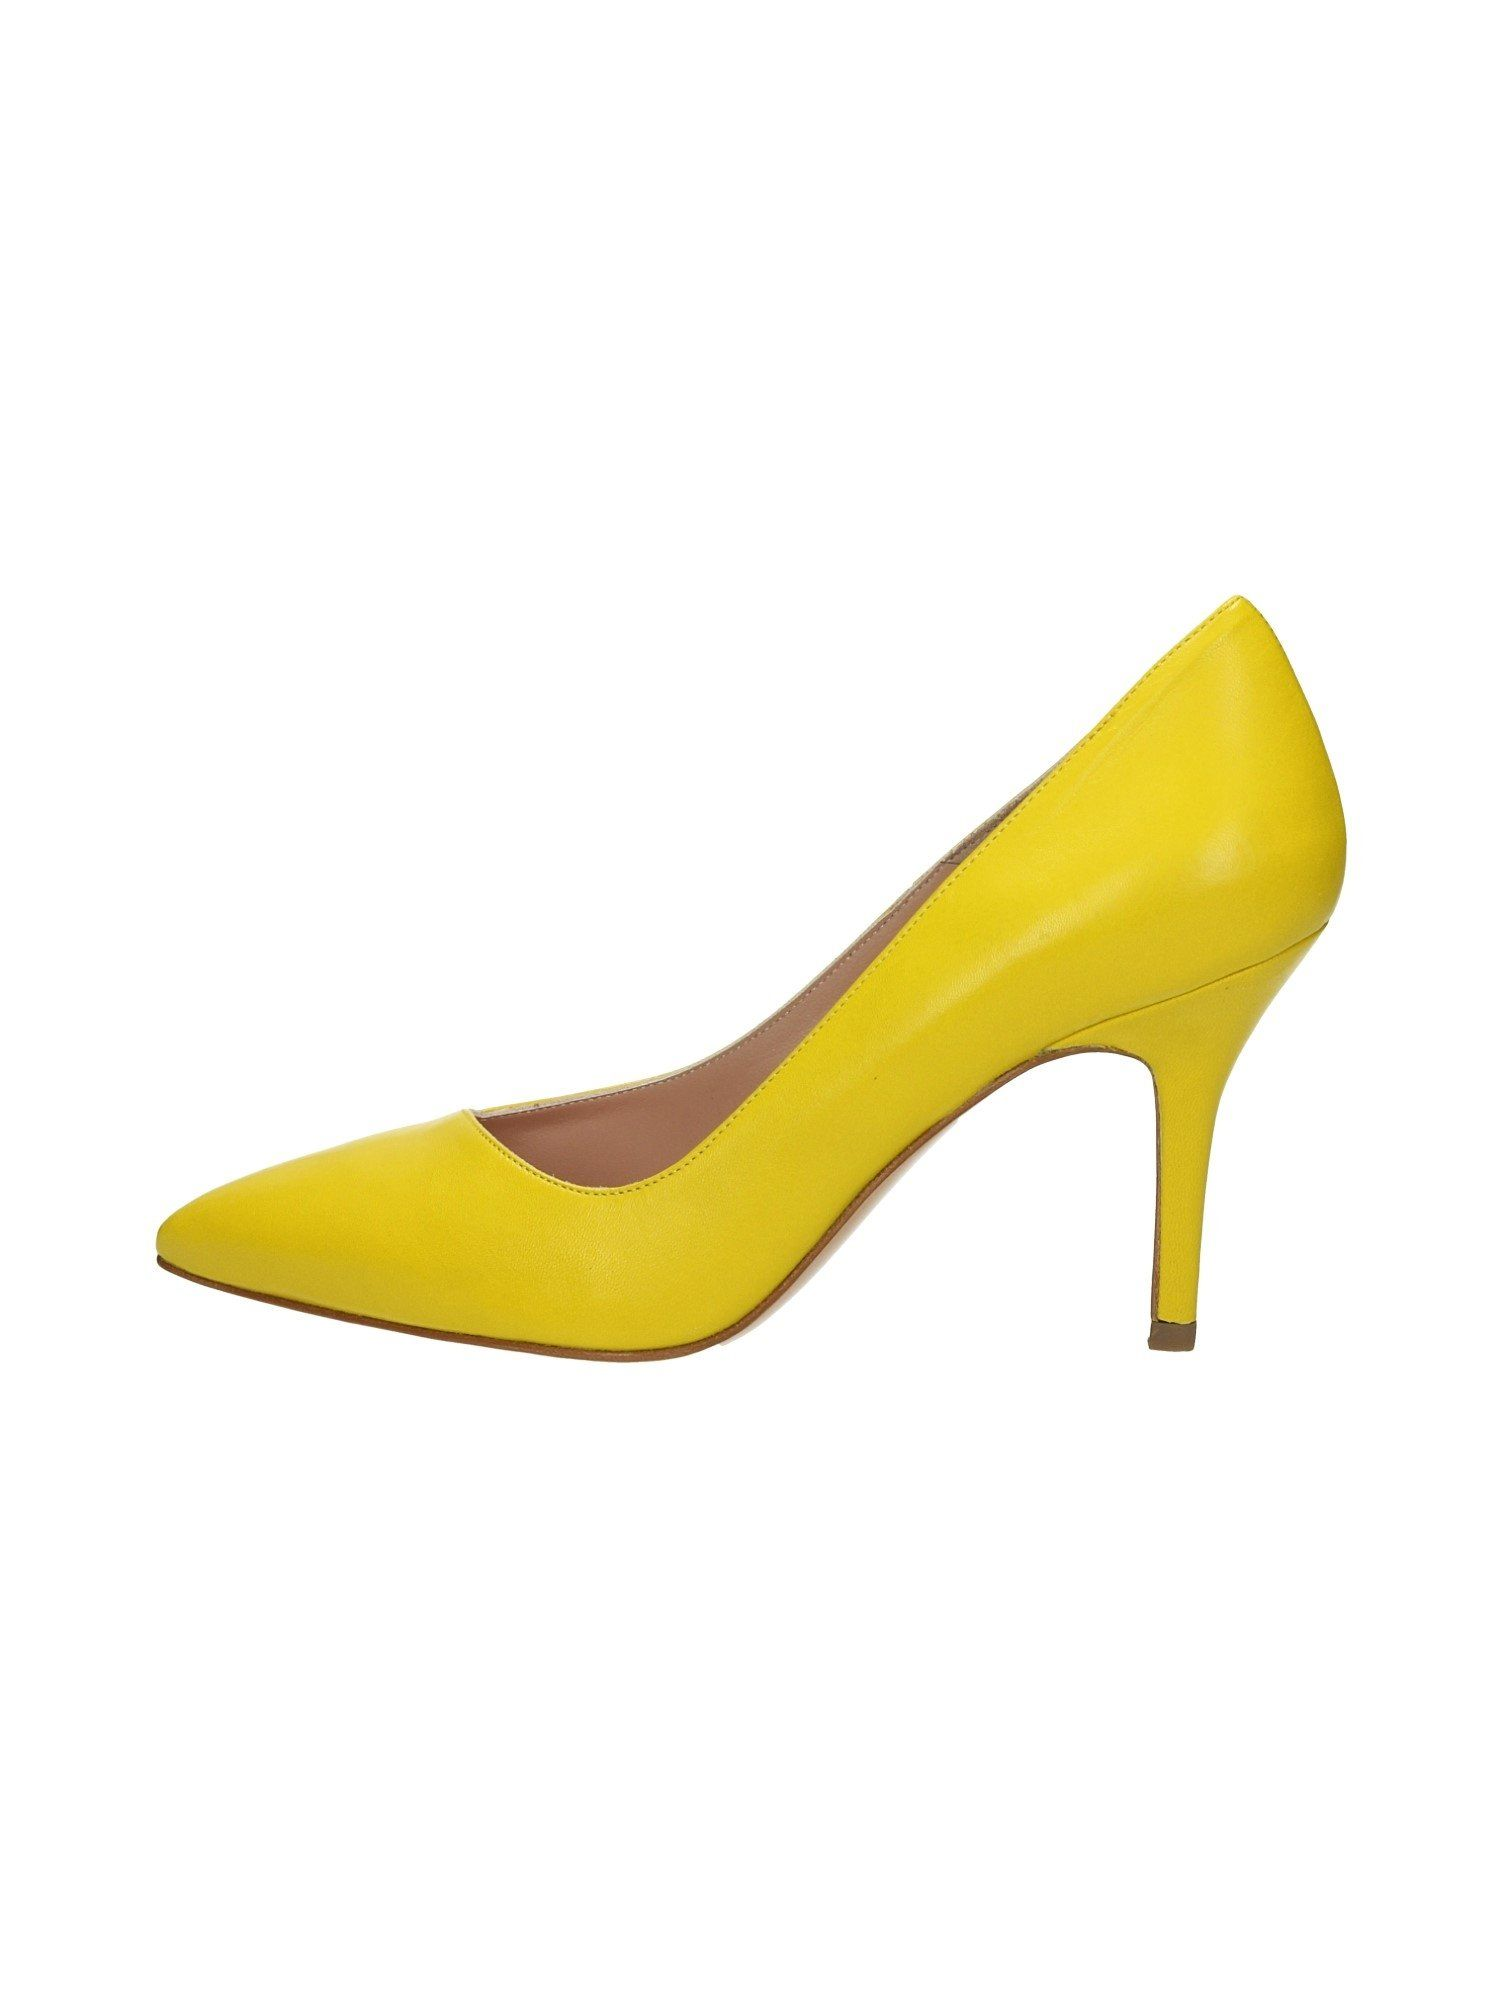 b5e5731e96f Broccoli Q83 High Heels Yellow, Size 6 UK: Amazon.co.uk: Shoes ...